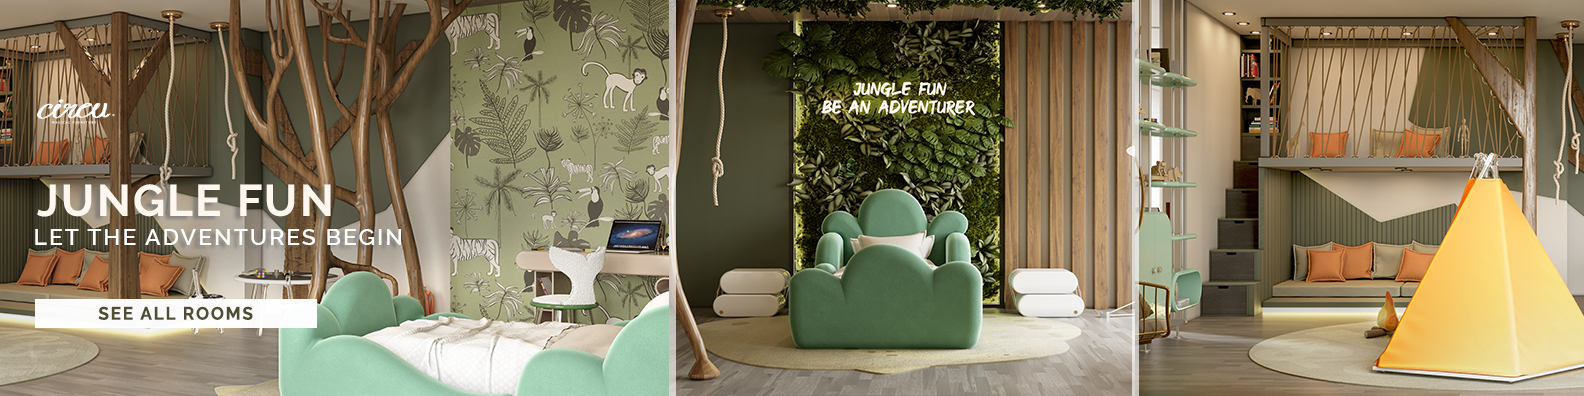 Step inside the funnest jungle ever